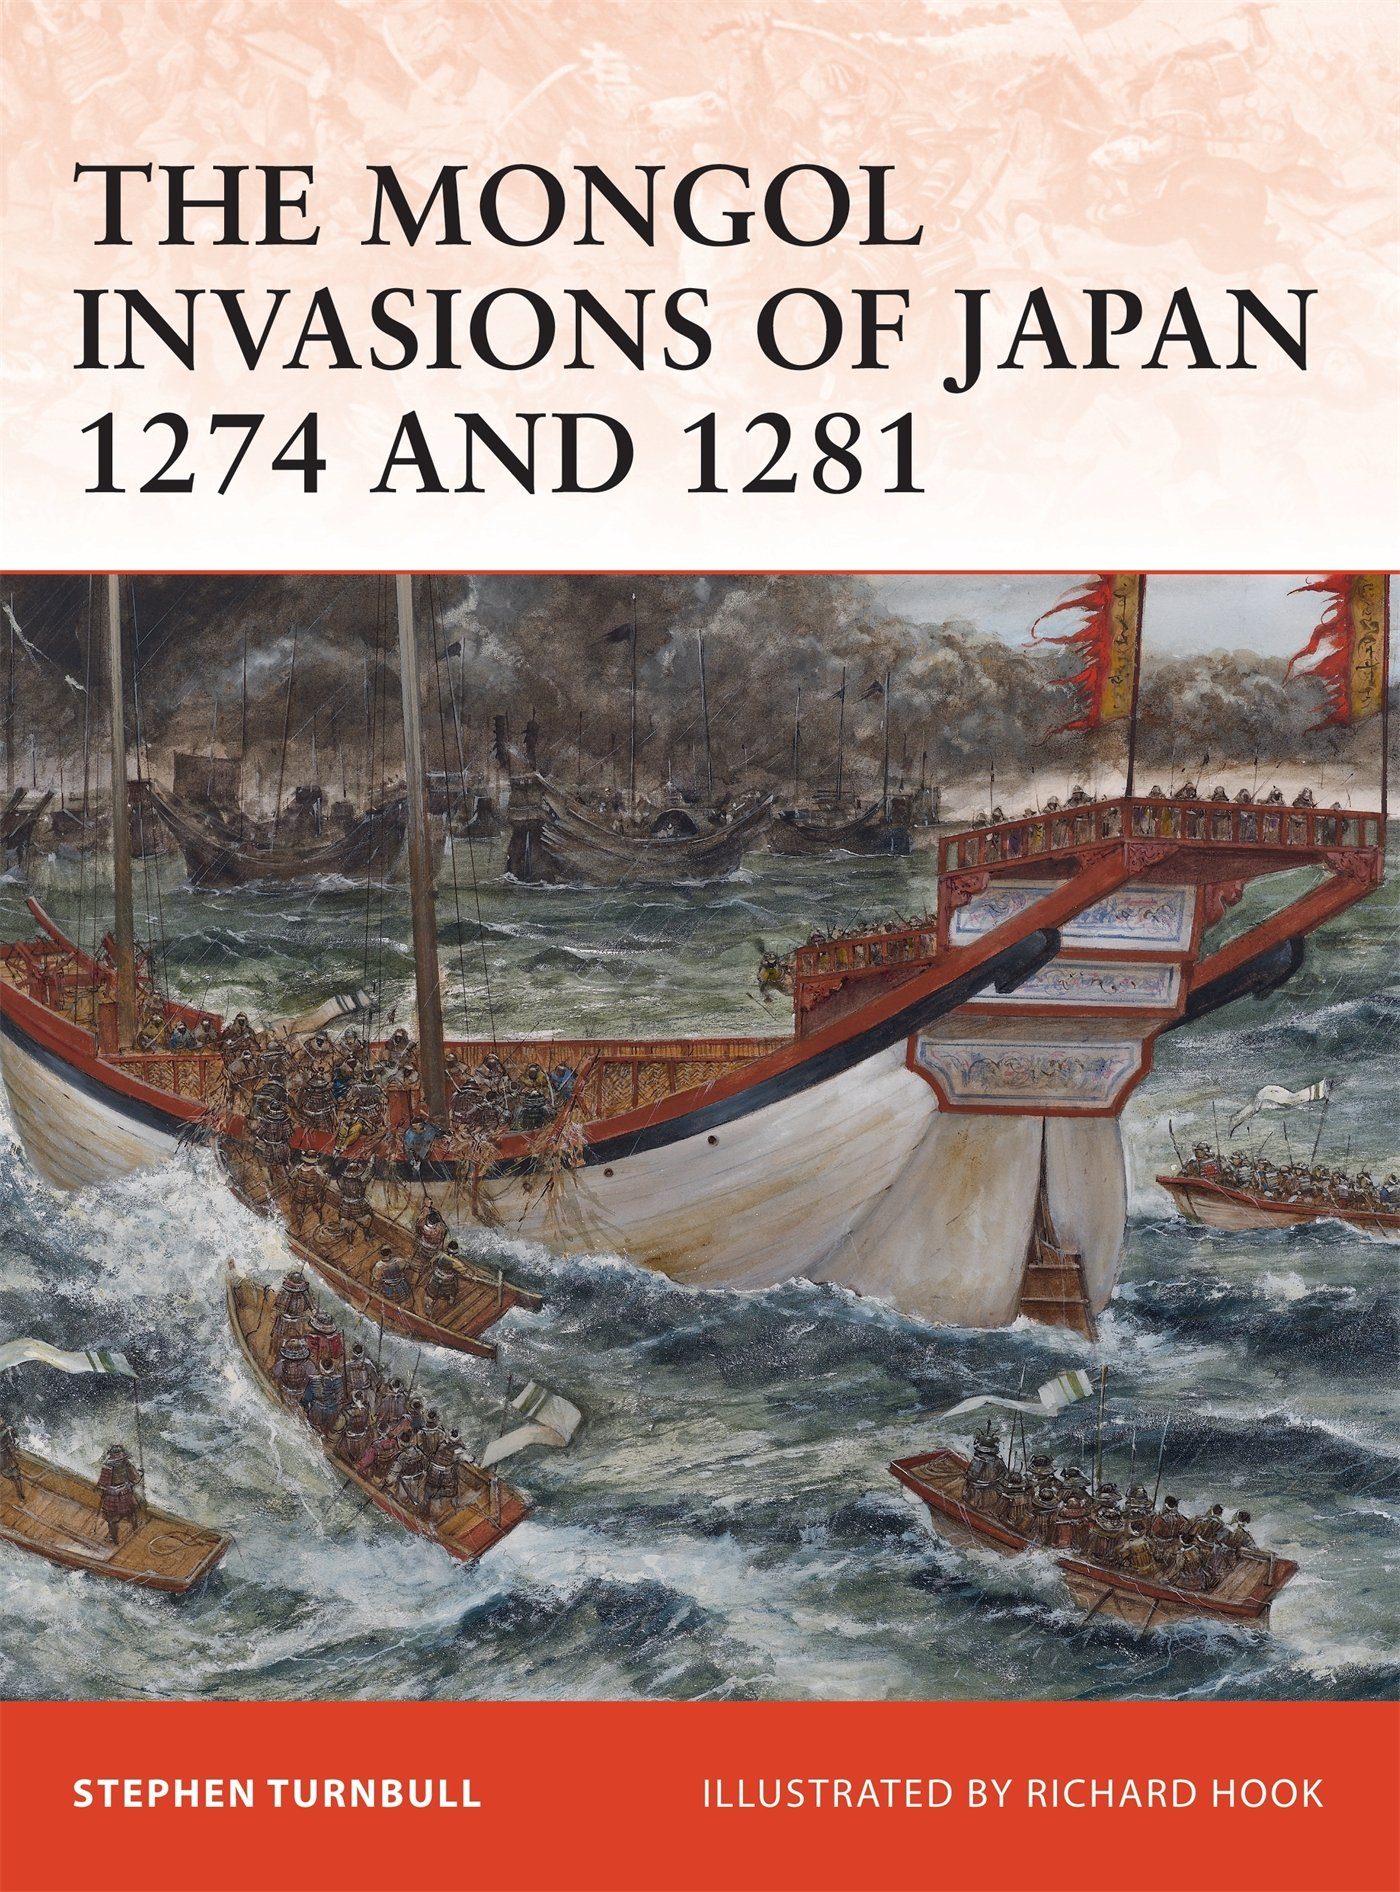 Amazon.com: The Mongol Invasions of Japan, 1274 and 1281 (Campaign)  (9781846034565): Stephen Turnbull, Richard Hook: Books